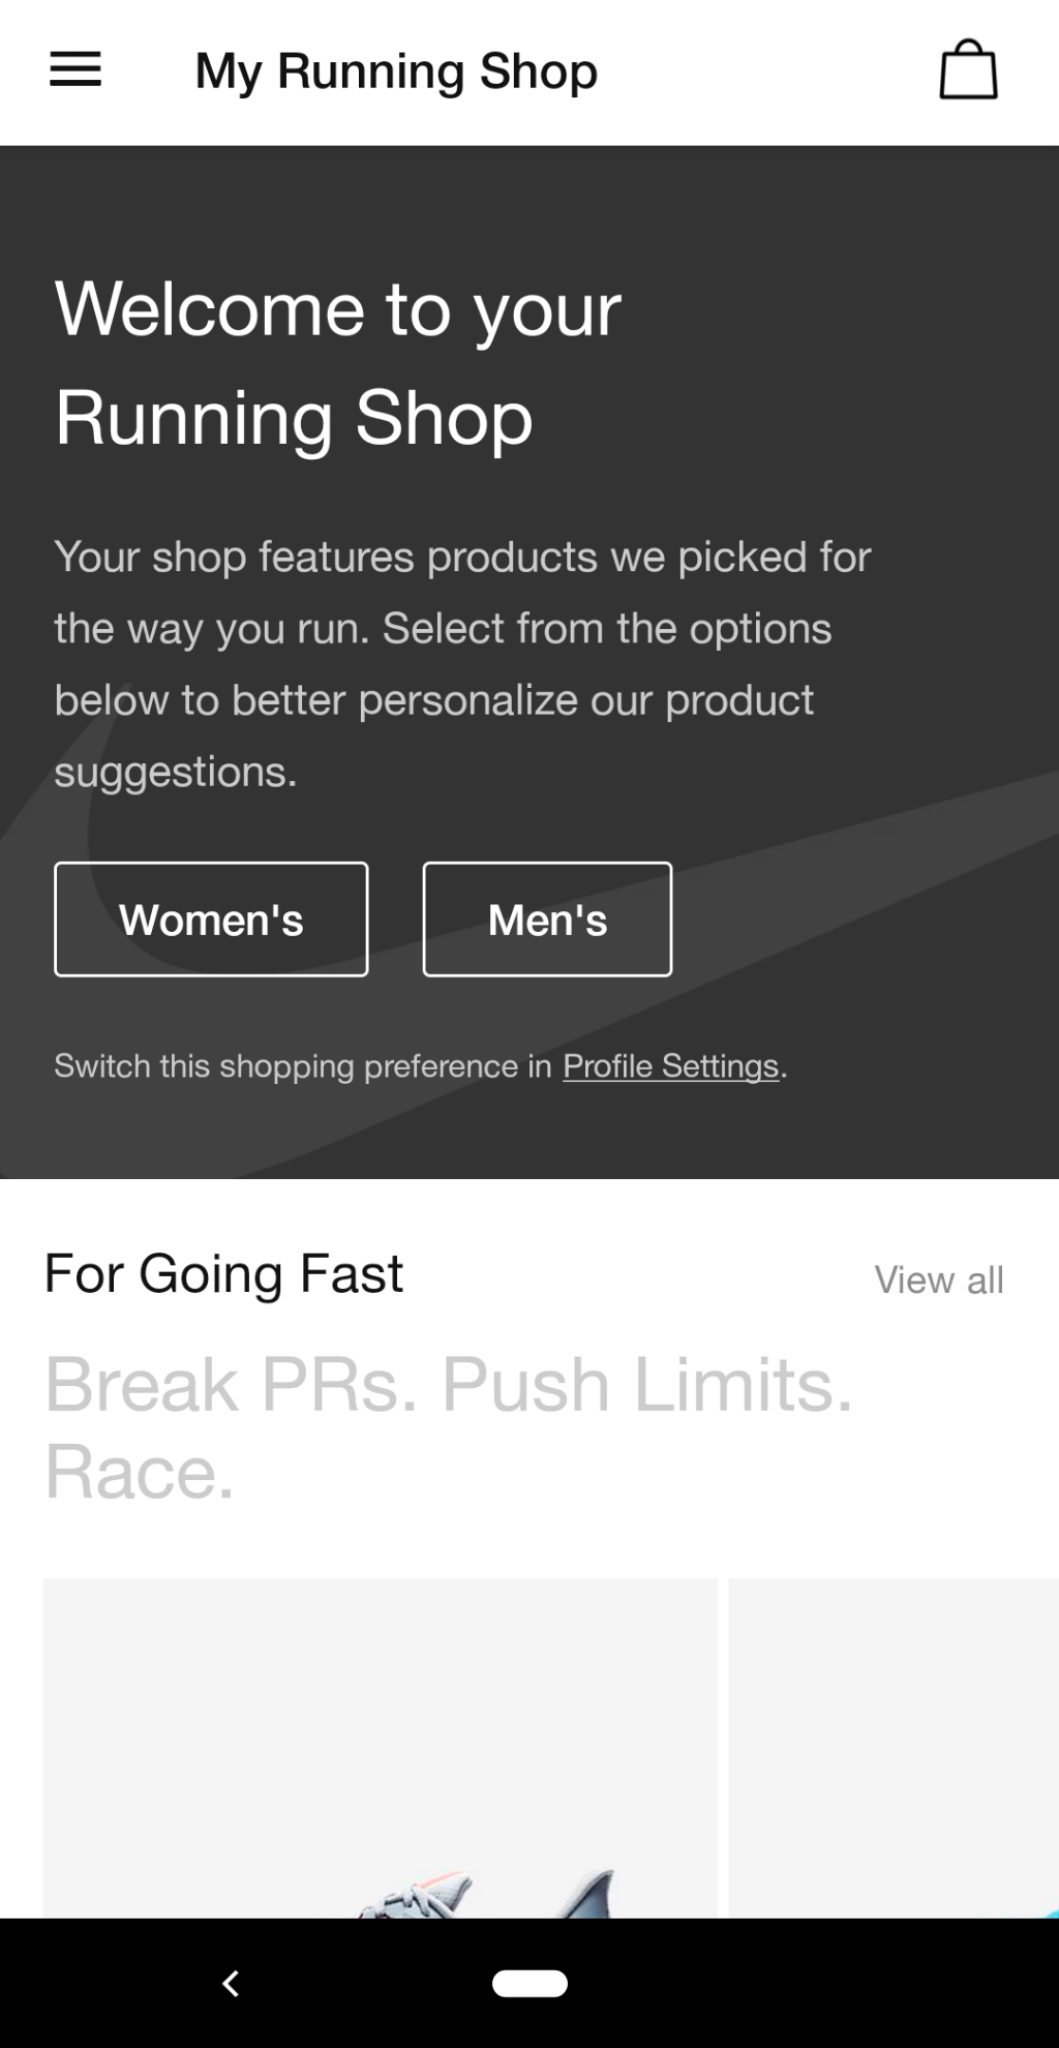 this is a mobile screenshot from the nike run club app running shop that shows a personalized fitness shop experience. this is an example of good ecommerce ux